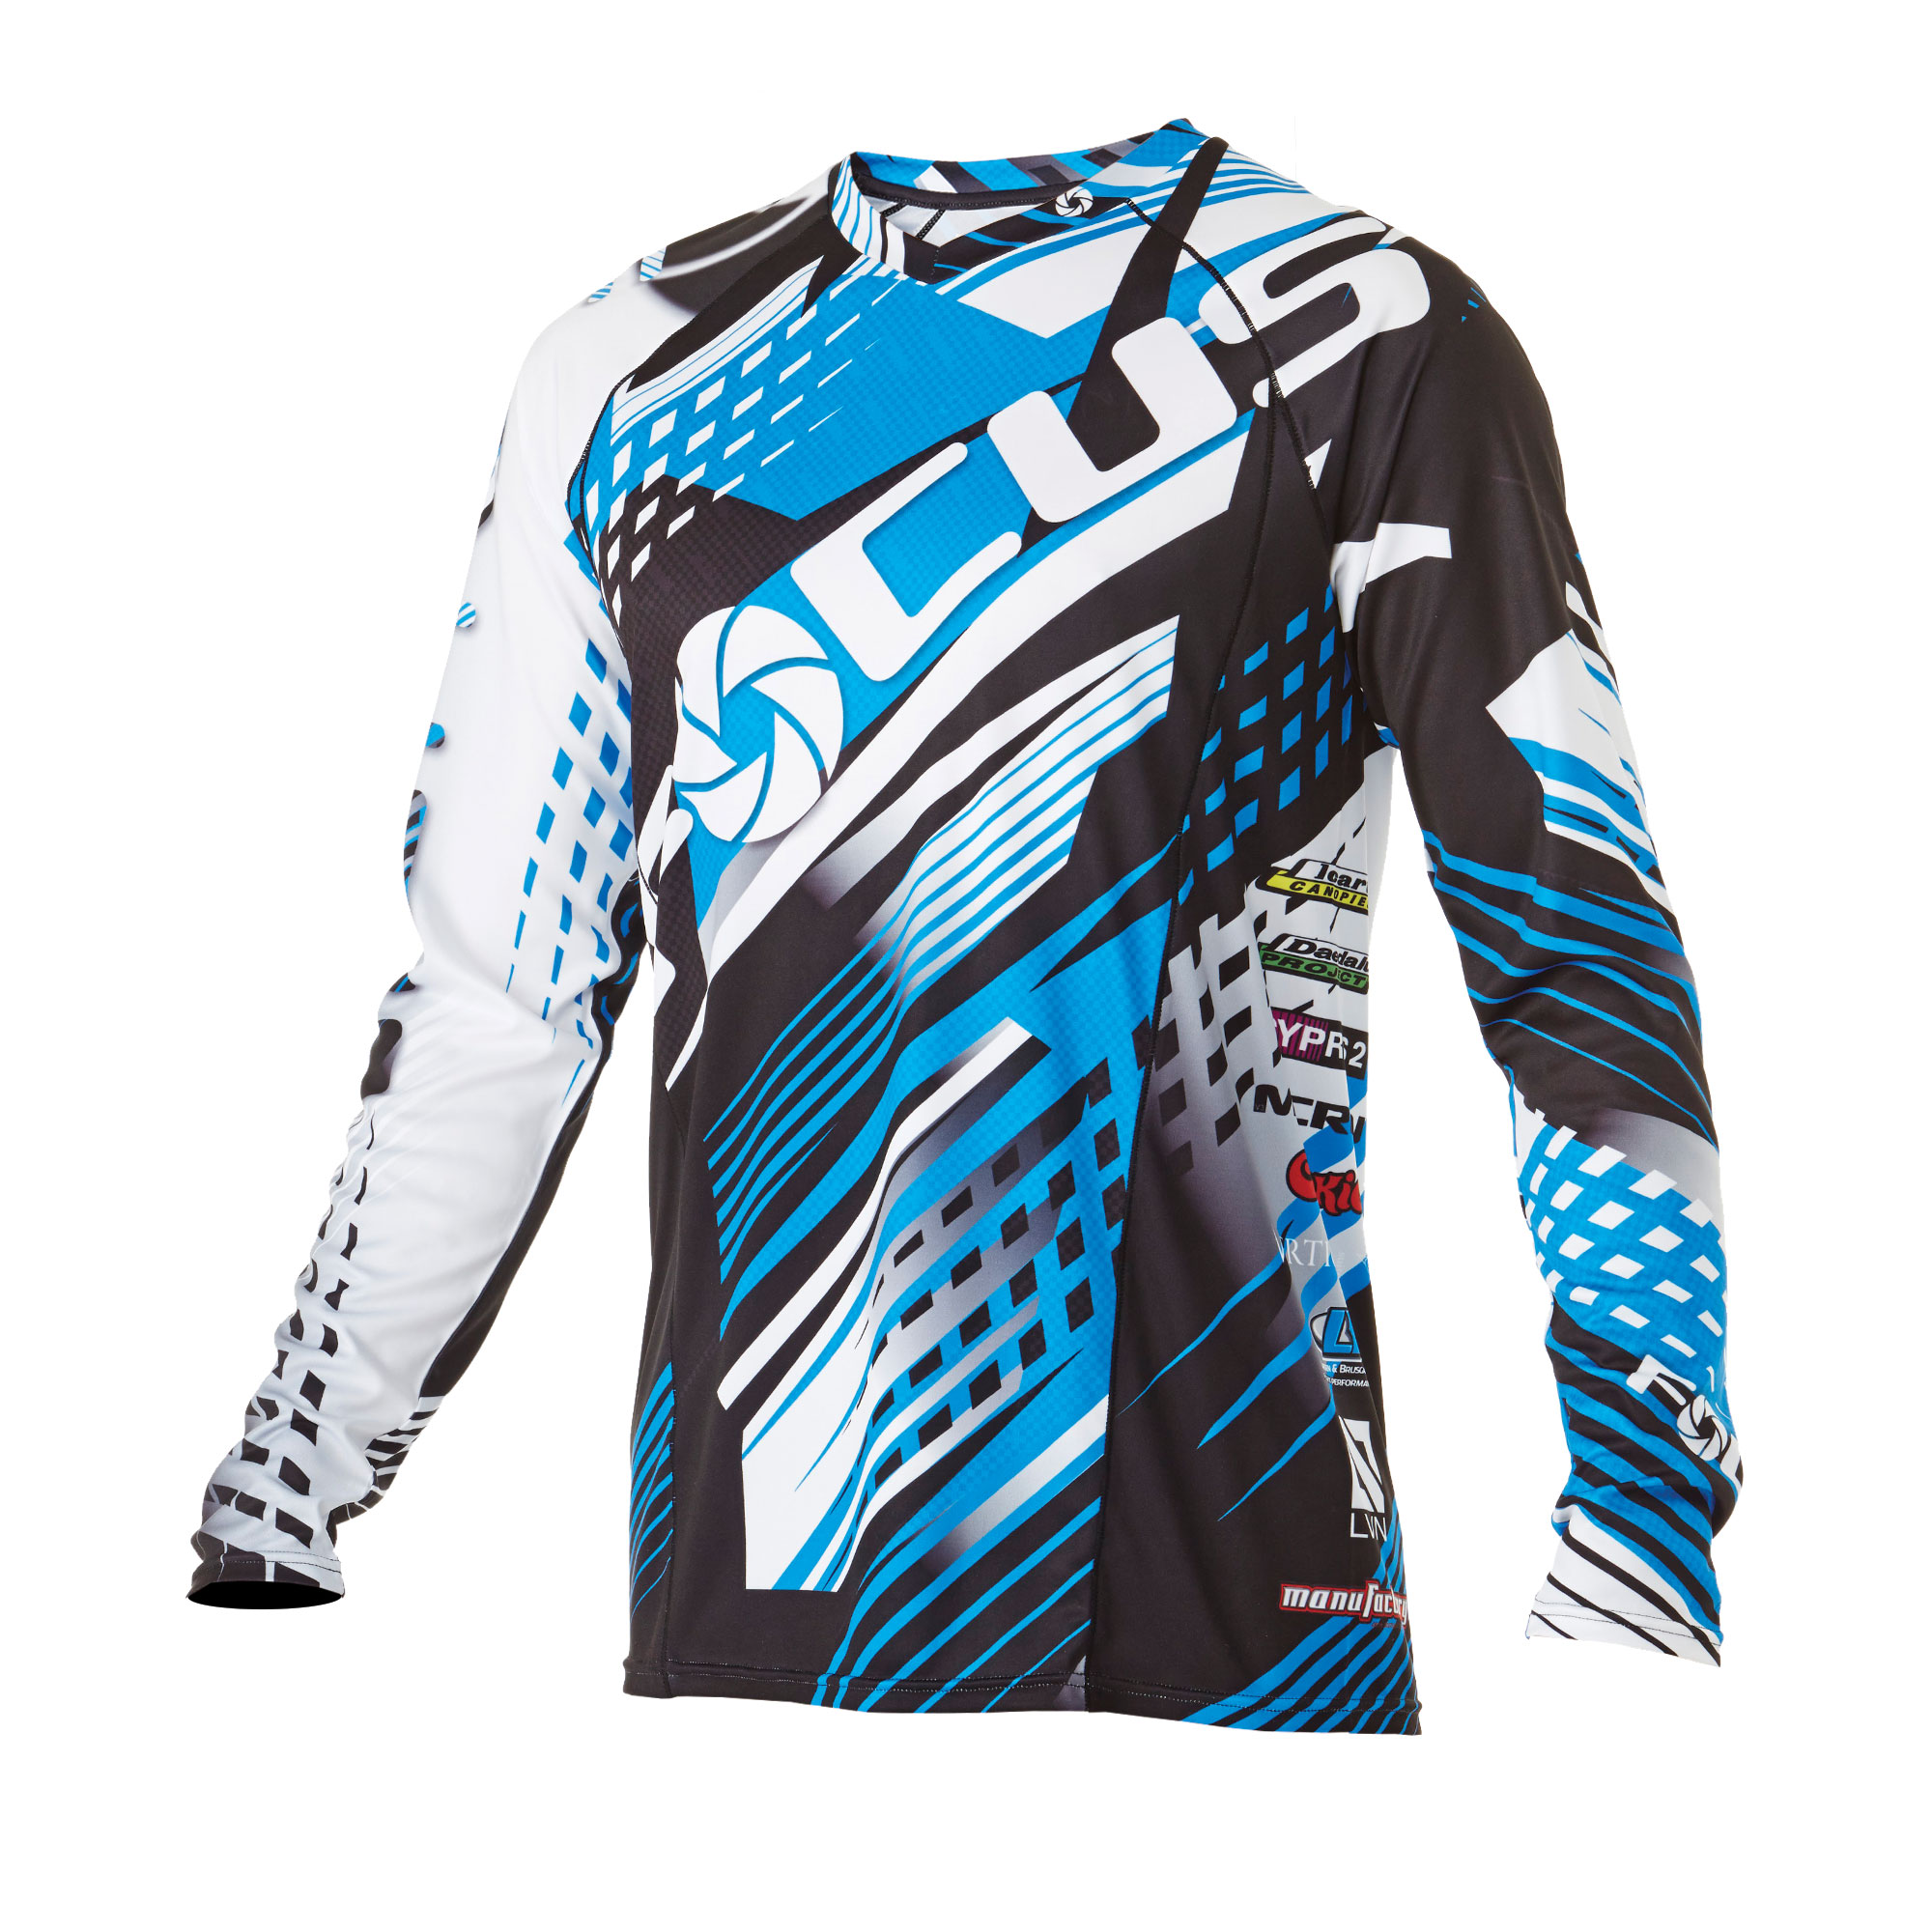 b7a15baf9 Skydiving Jersey - Manufactory Apparel